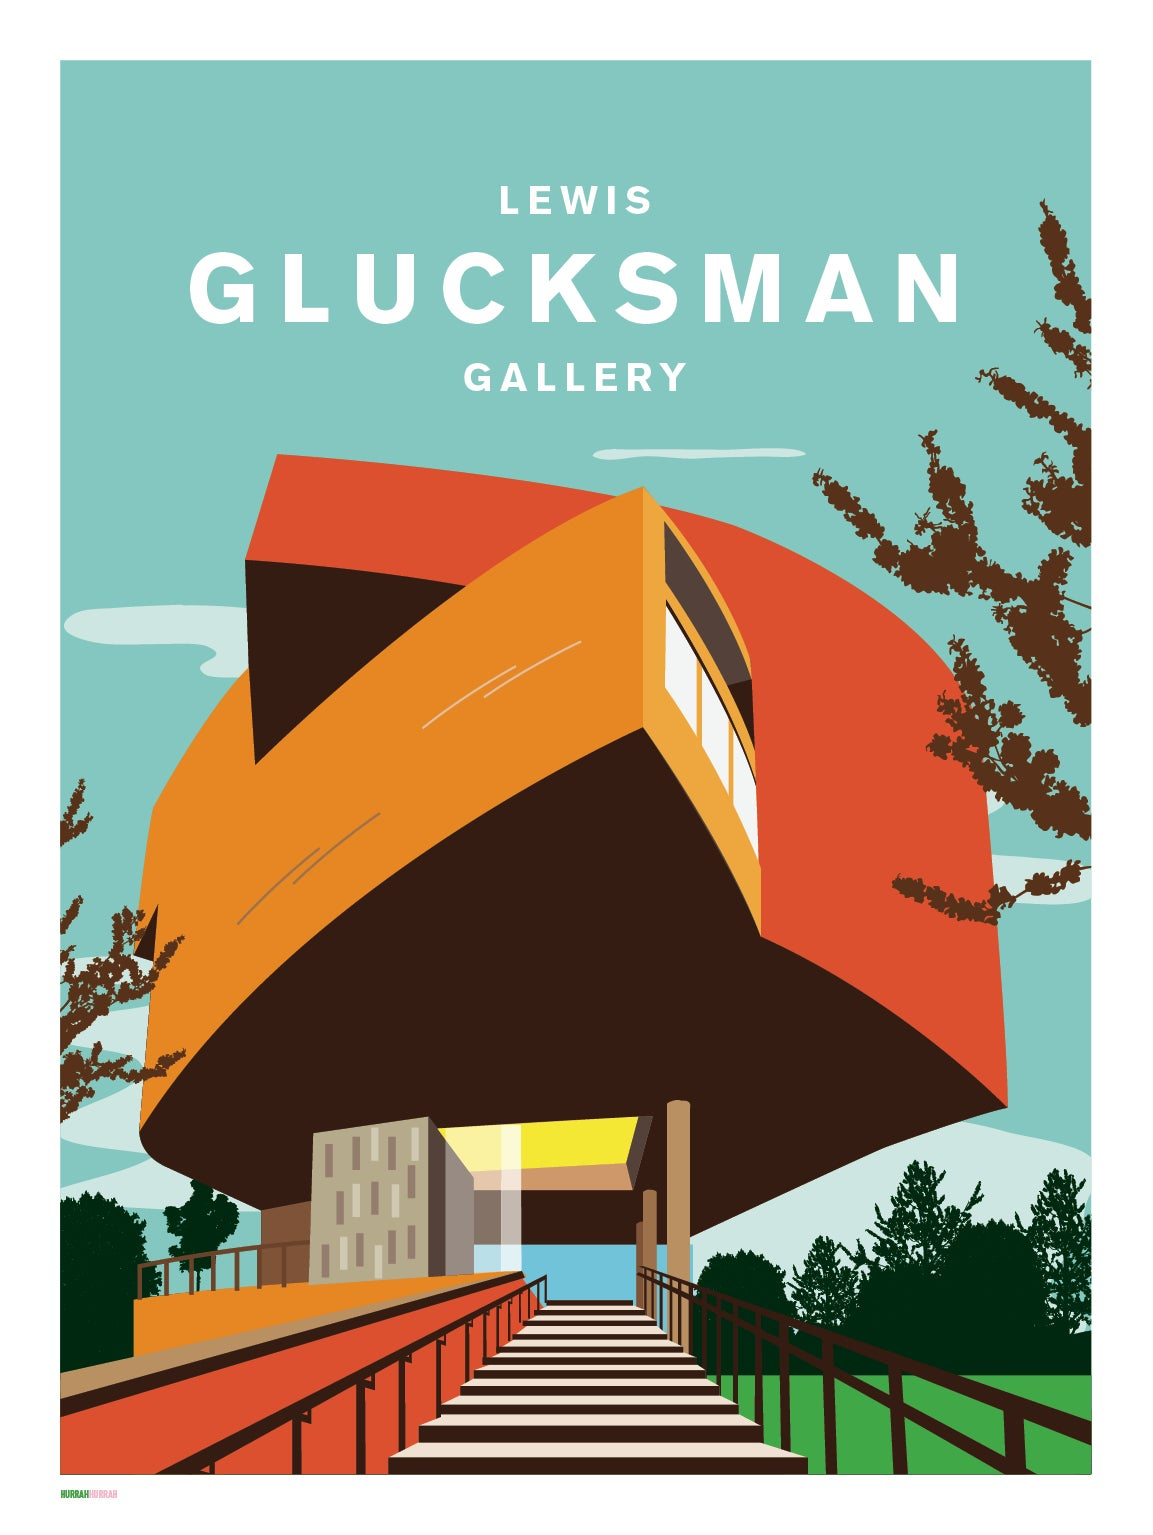 Image of The Glucksman Gallery